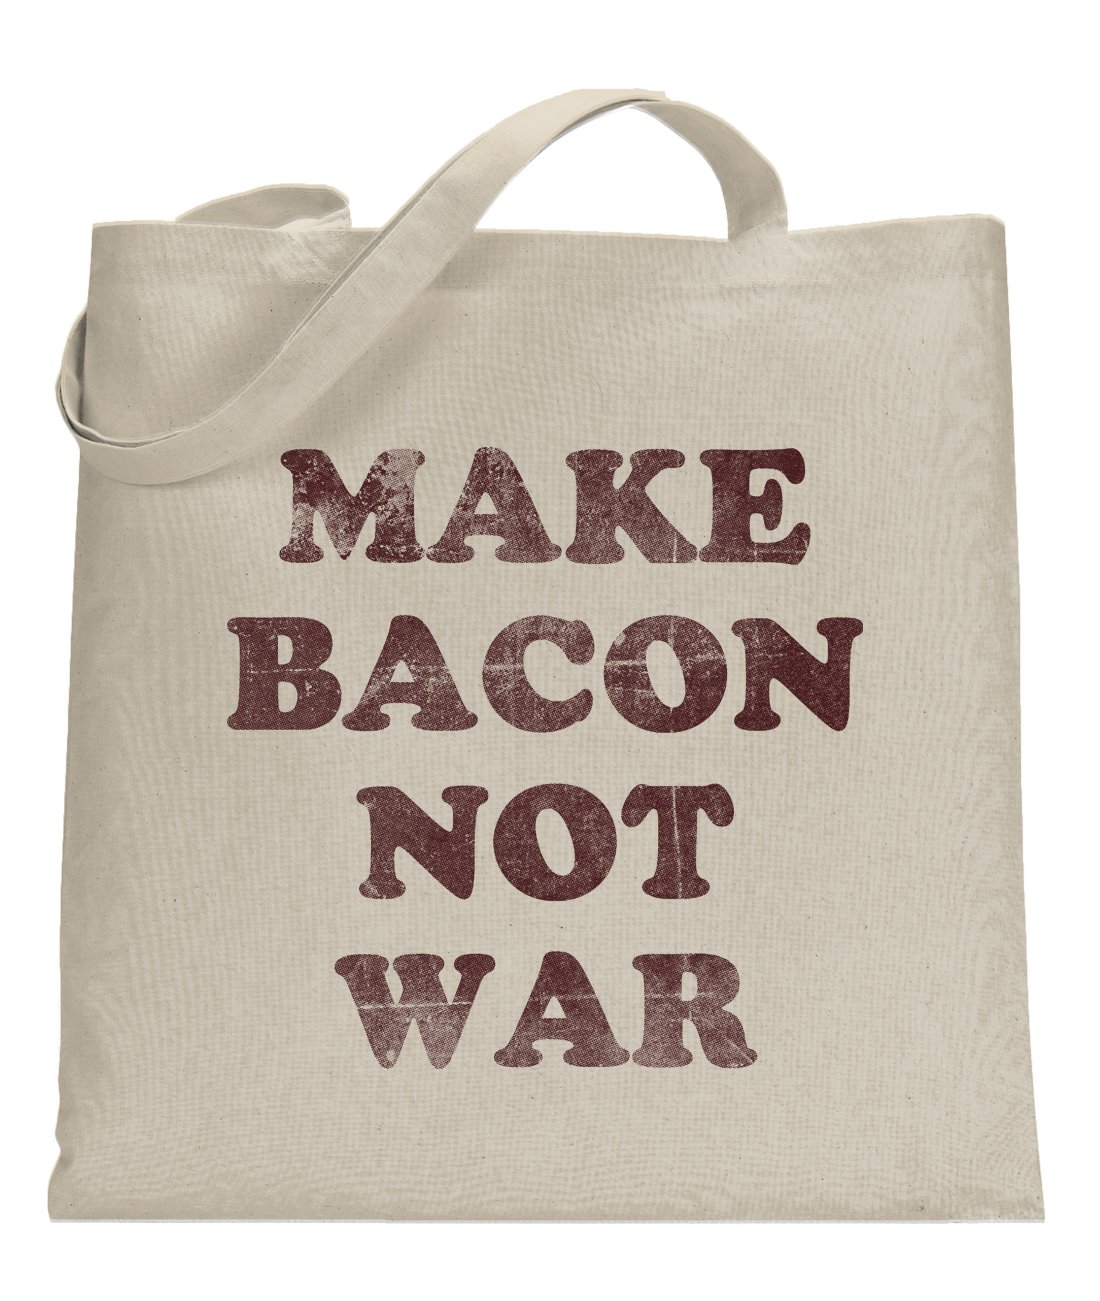 Crazy Dog Make Bacon Not War Universal Tote Bag Funny Food Themed Tote standard